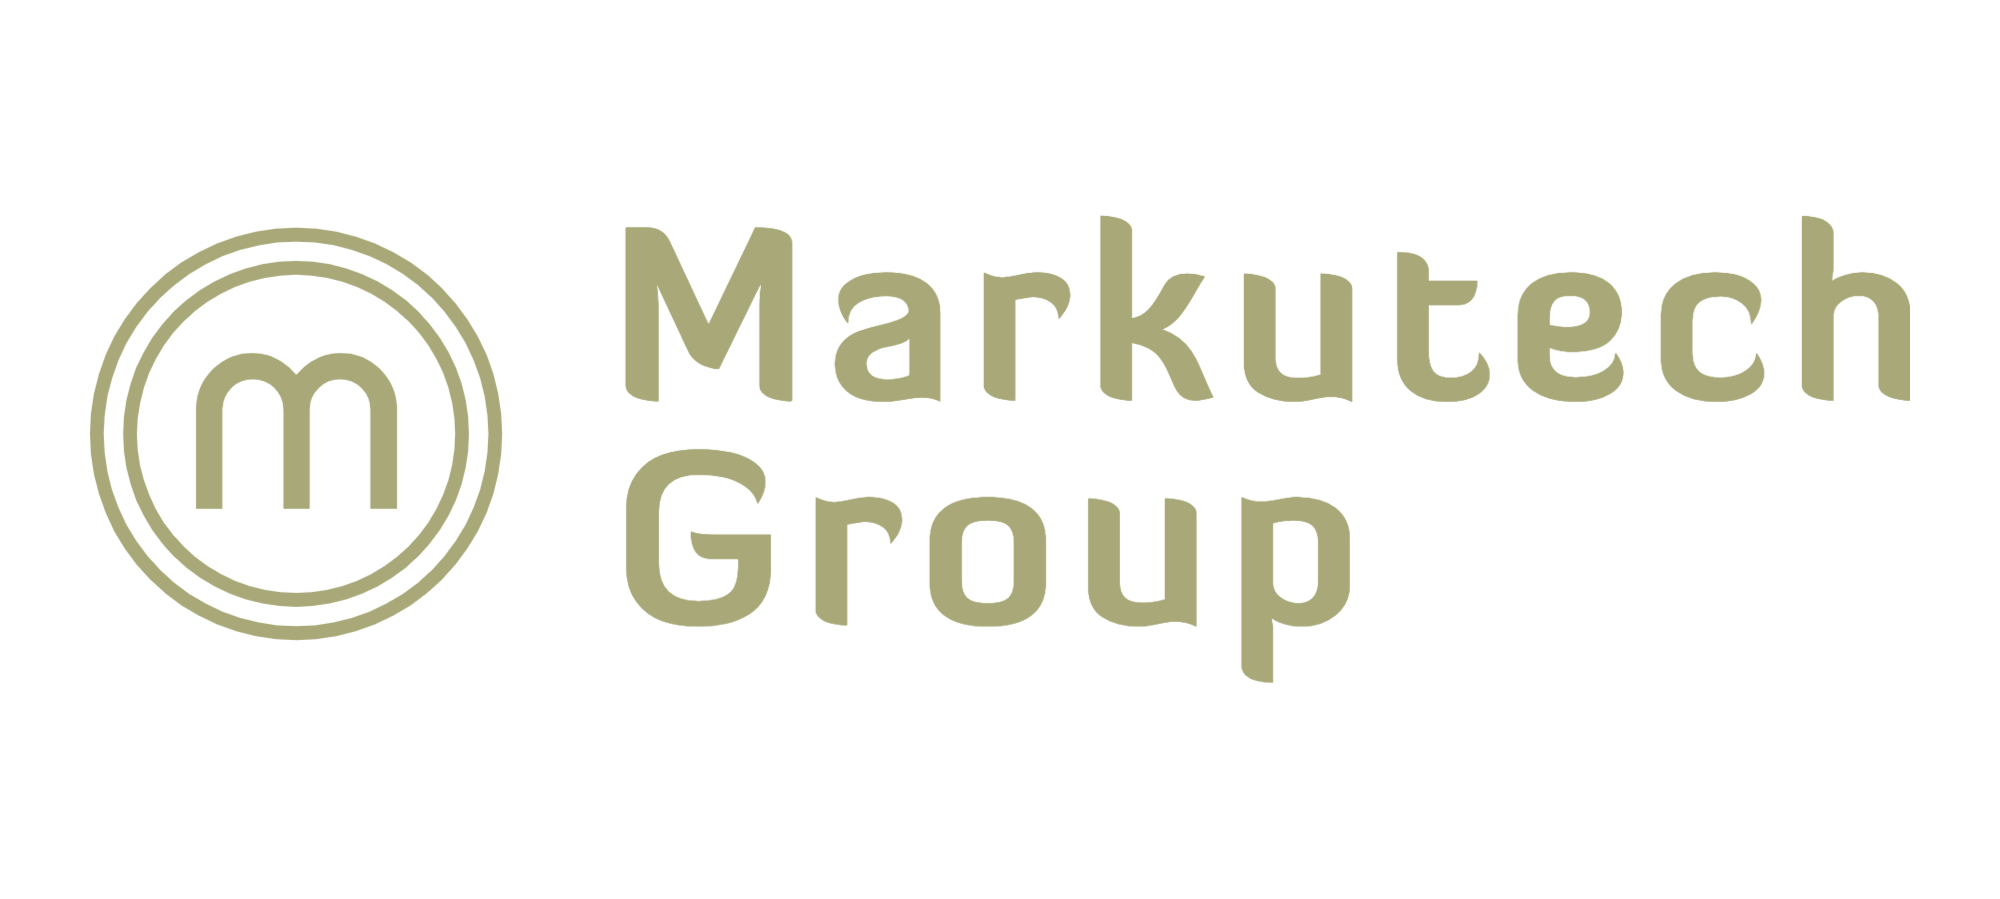 Markutech Group SL